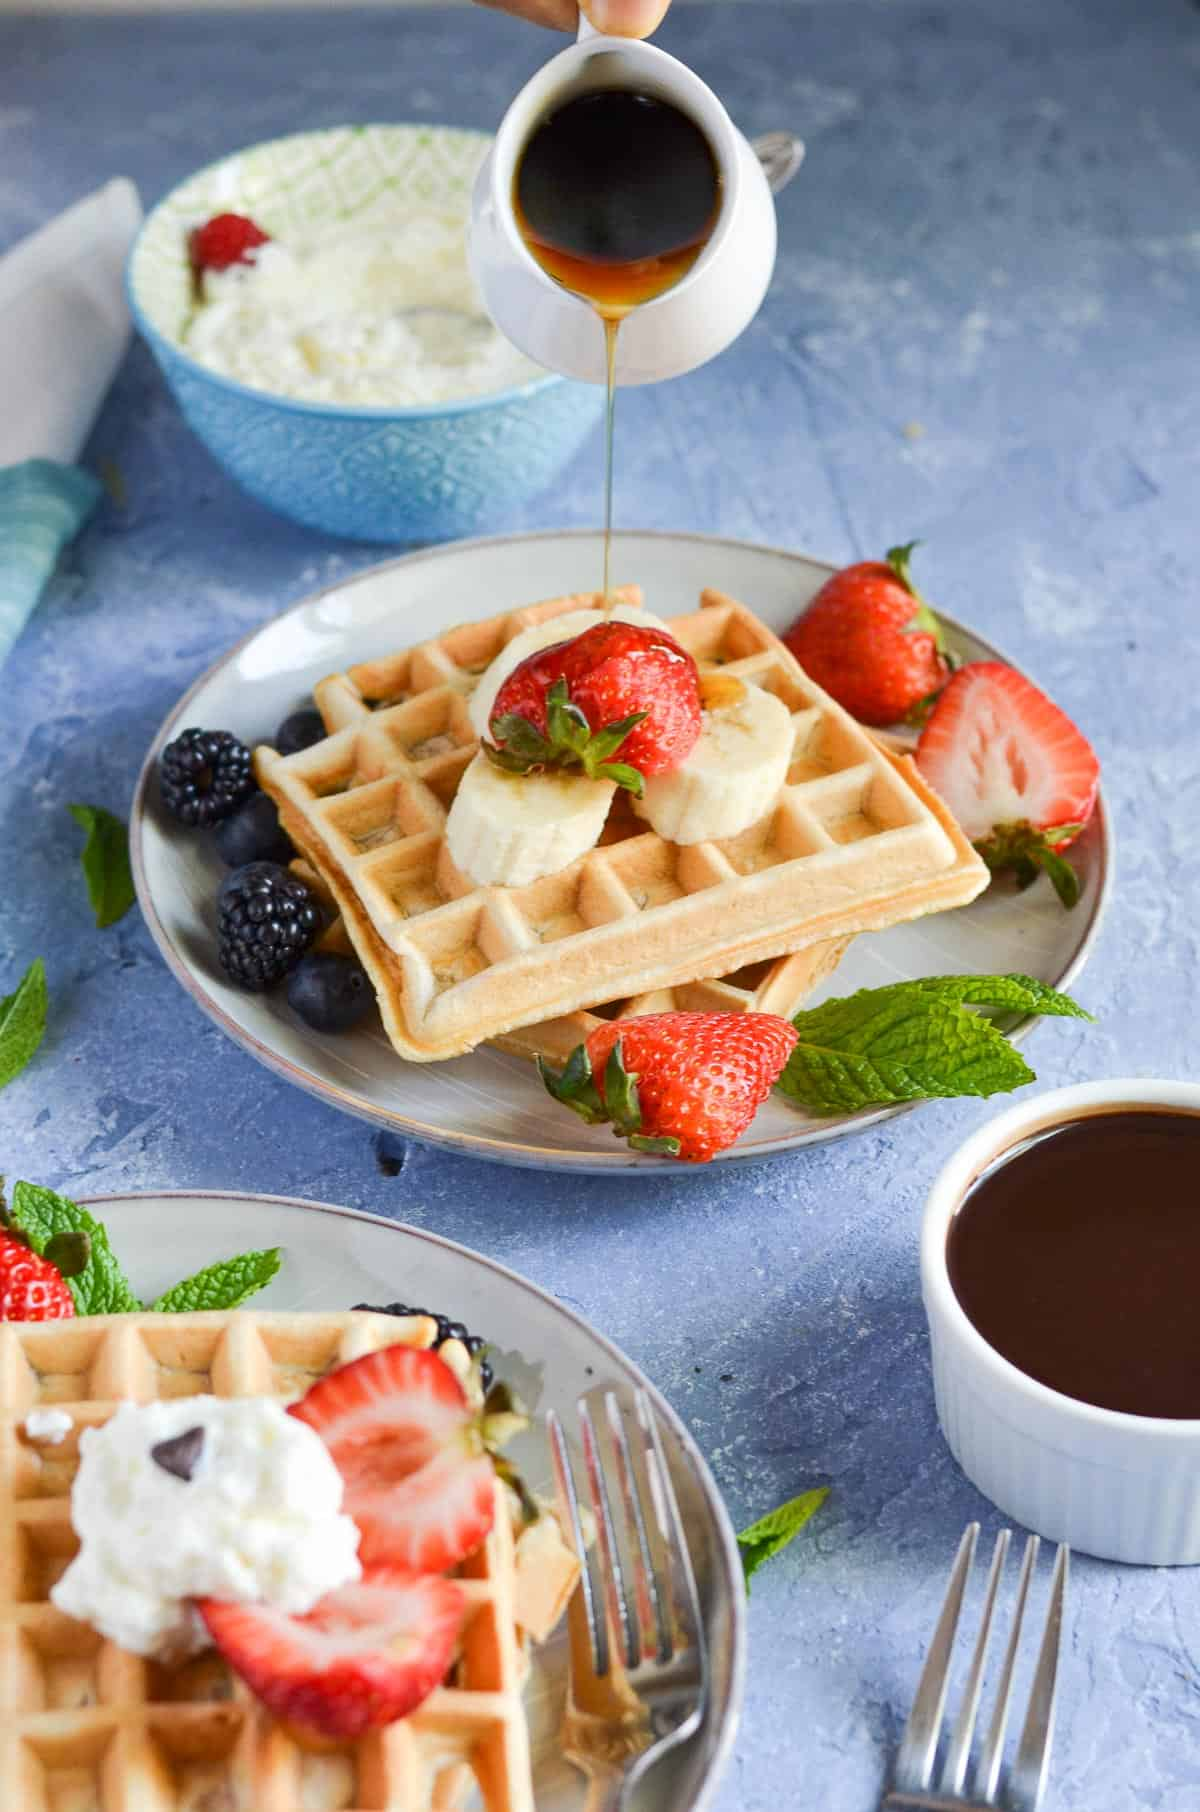 maple syrup is poured over wheat waffles.